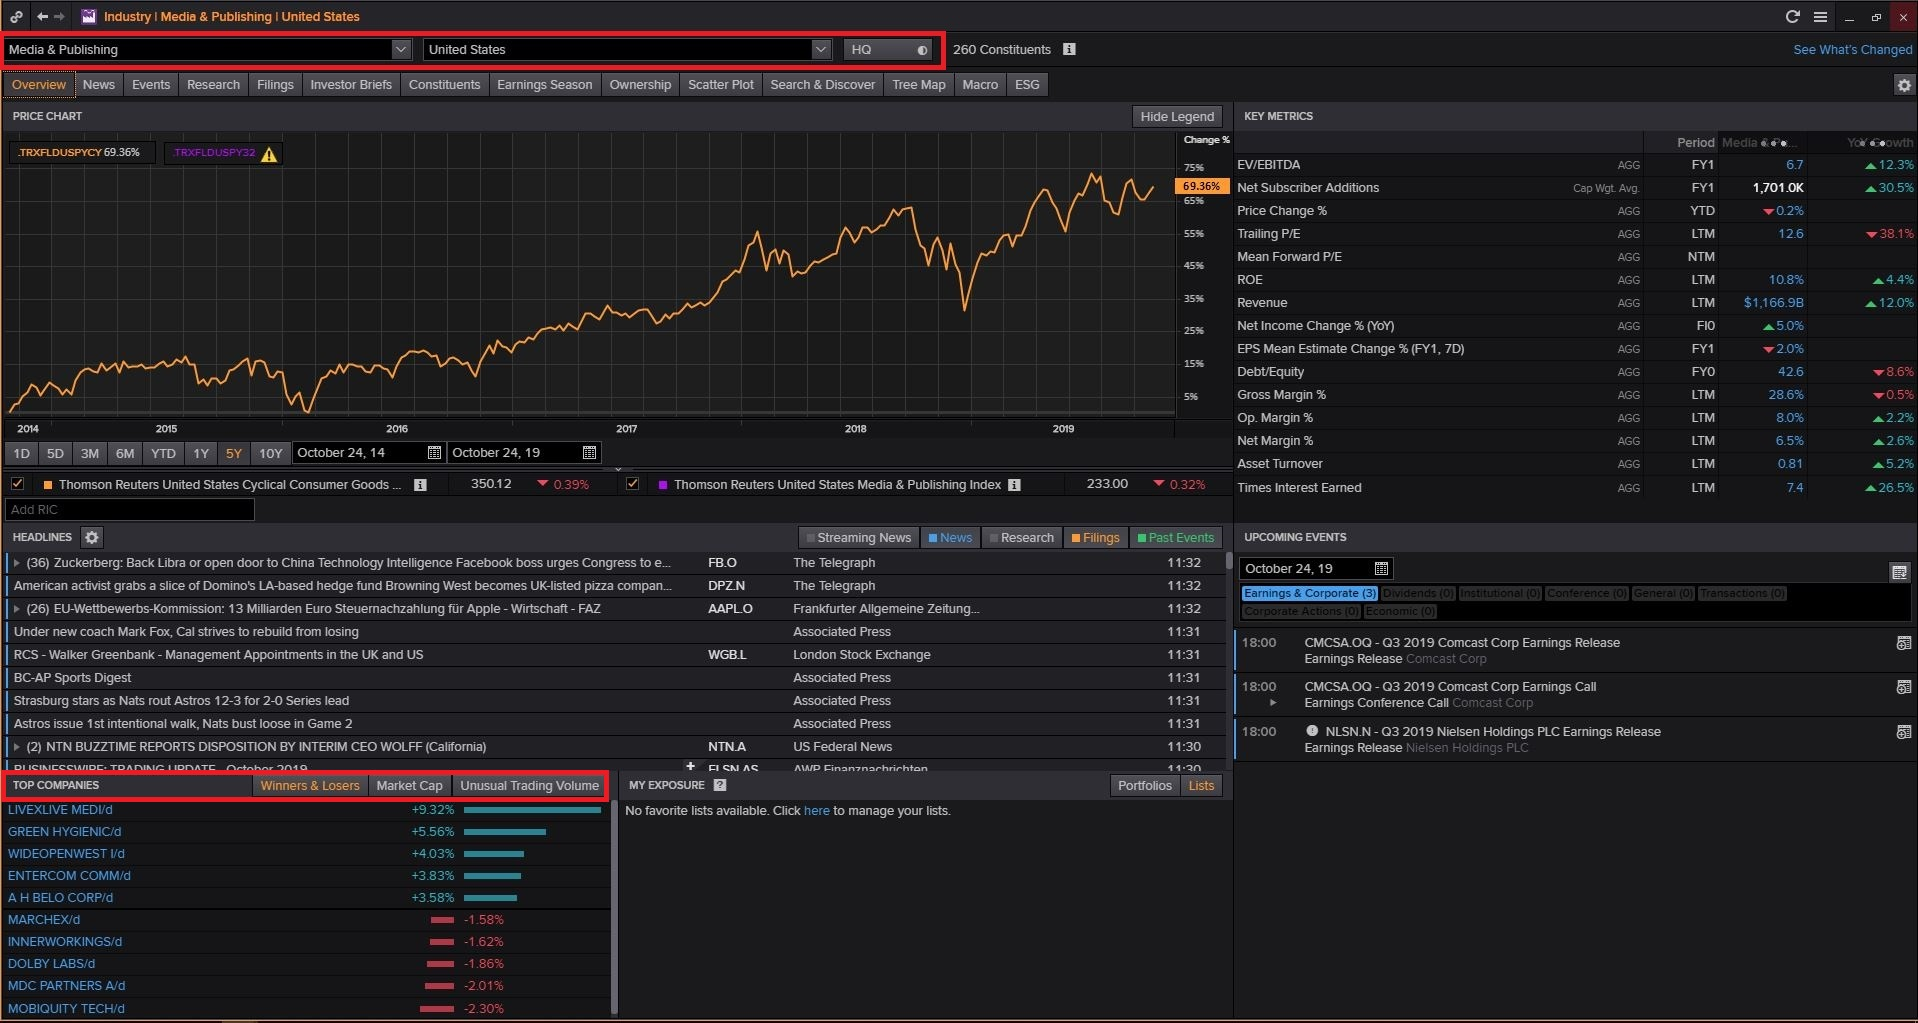 Login to Thomson Reuters Eikon (Available Only in Library) then Type INDUS and Search and Search for Media and Click on Required Industry and Select Country